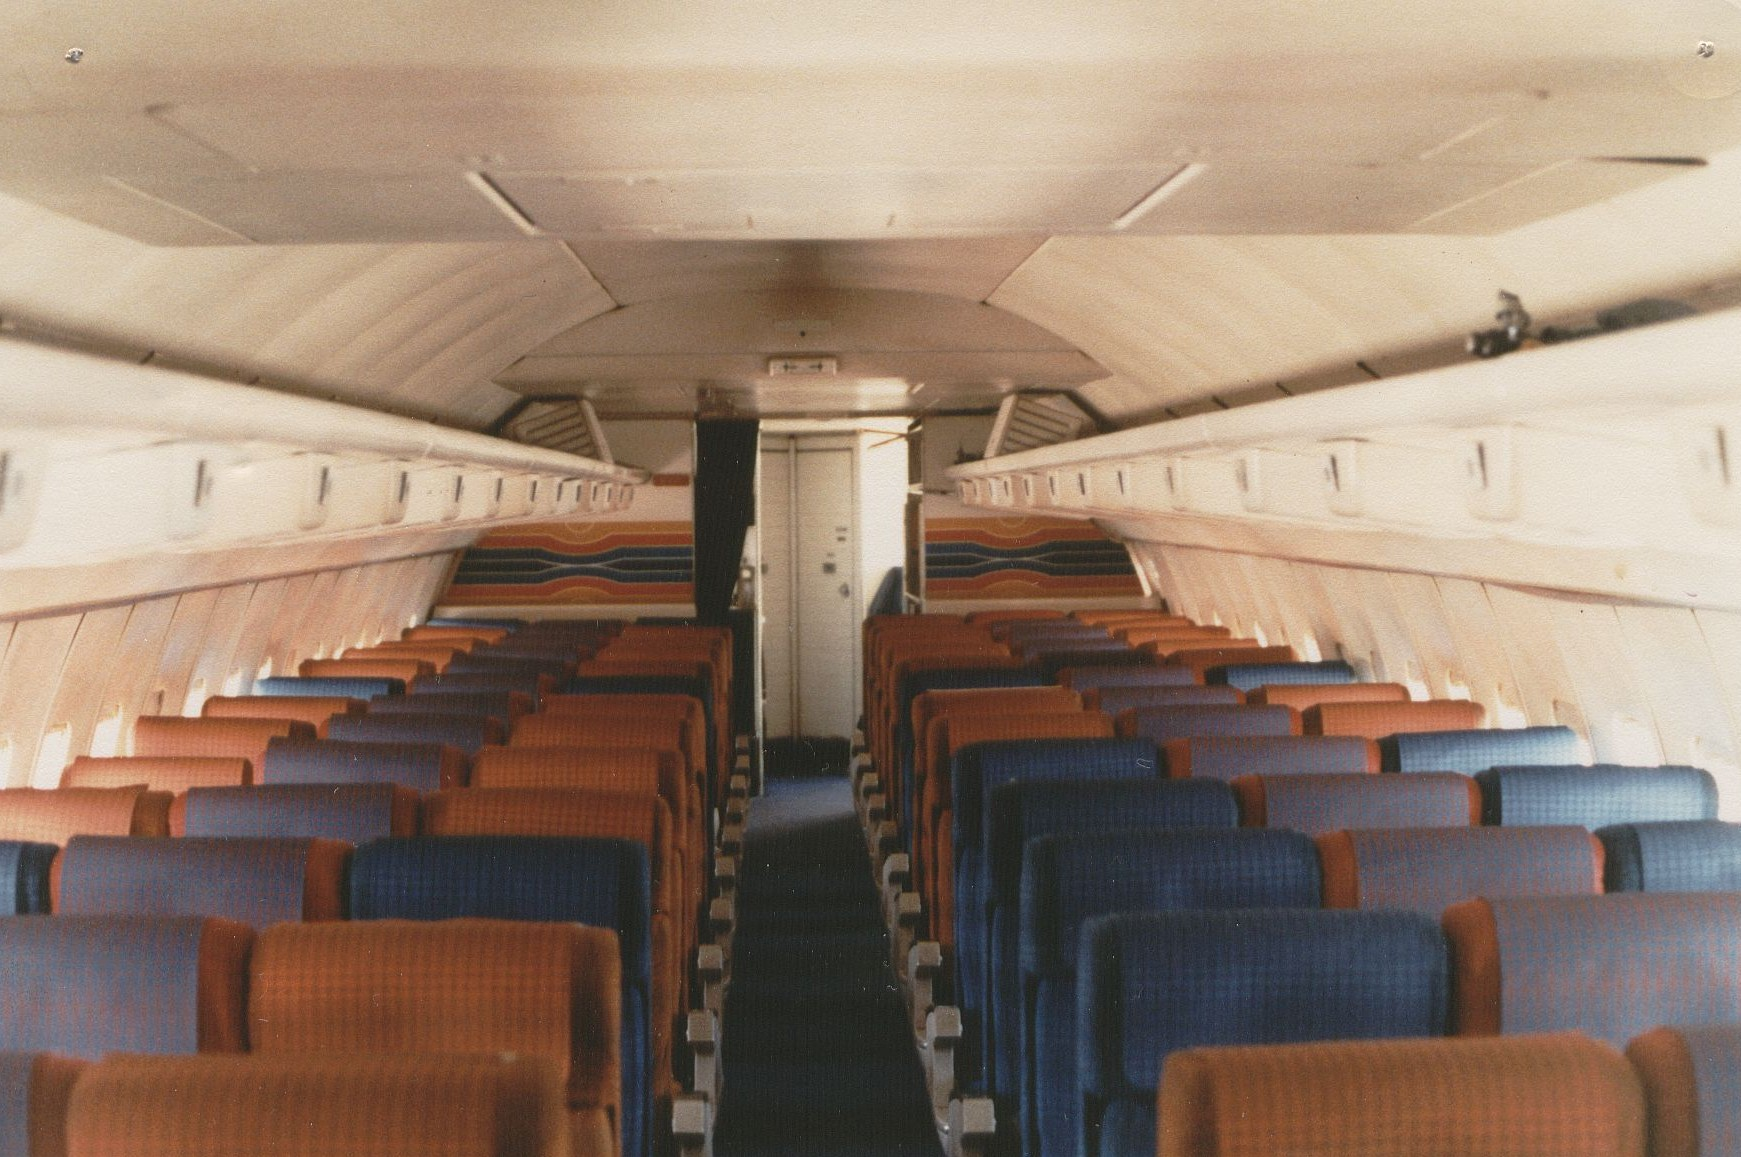 August 1981 The rear section of the cabin of a Pan Am Boeing 707 in an all economy configuration with 180 seats.